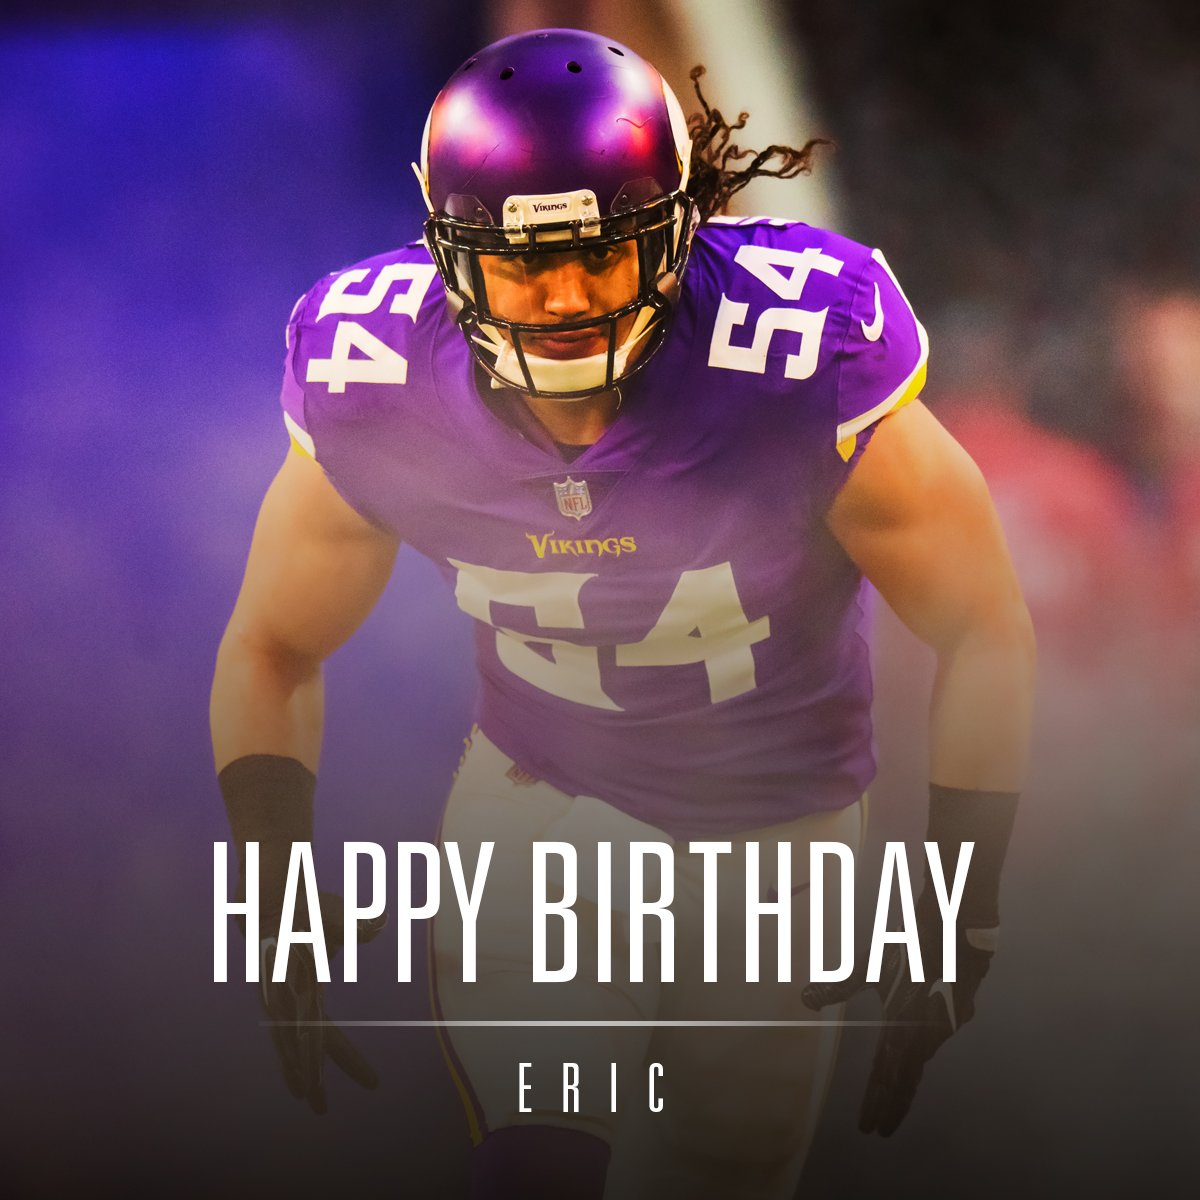 We'll go ahead and celebrate it today.  Happy birthday, @EricKendricks54! https://t.co/YQhrHs7jKb